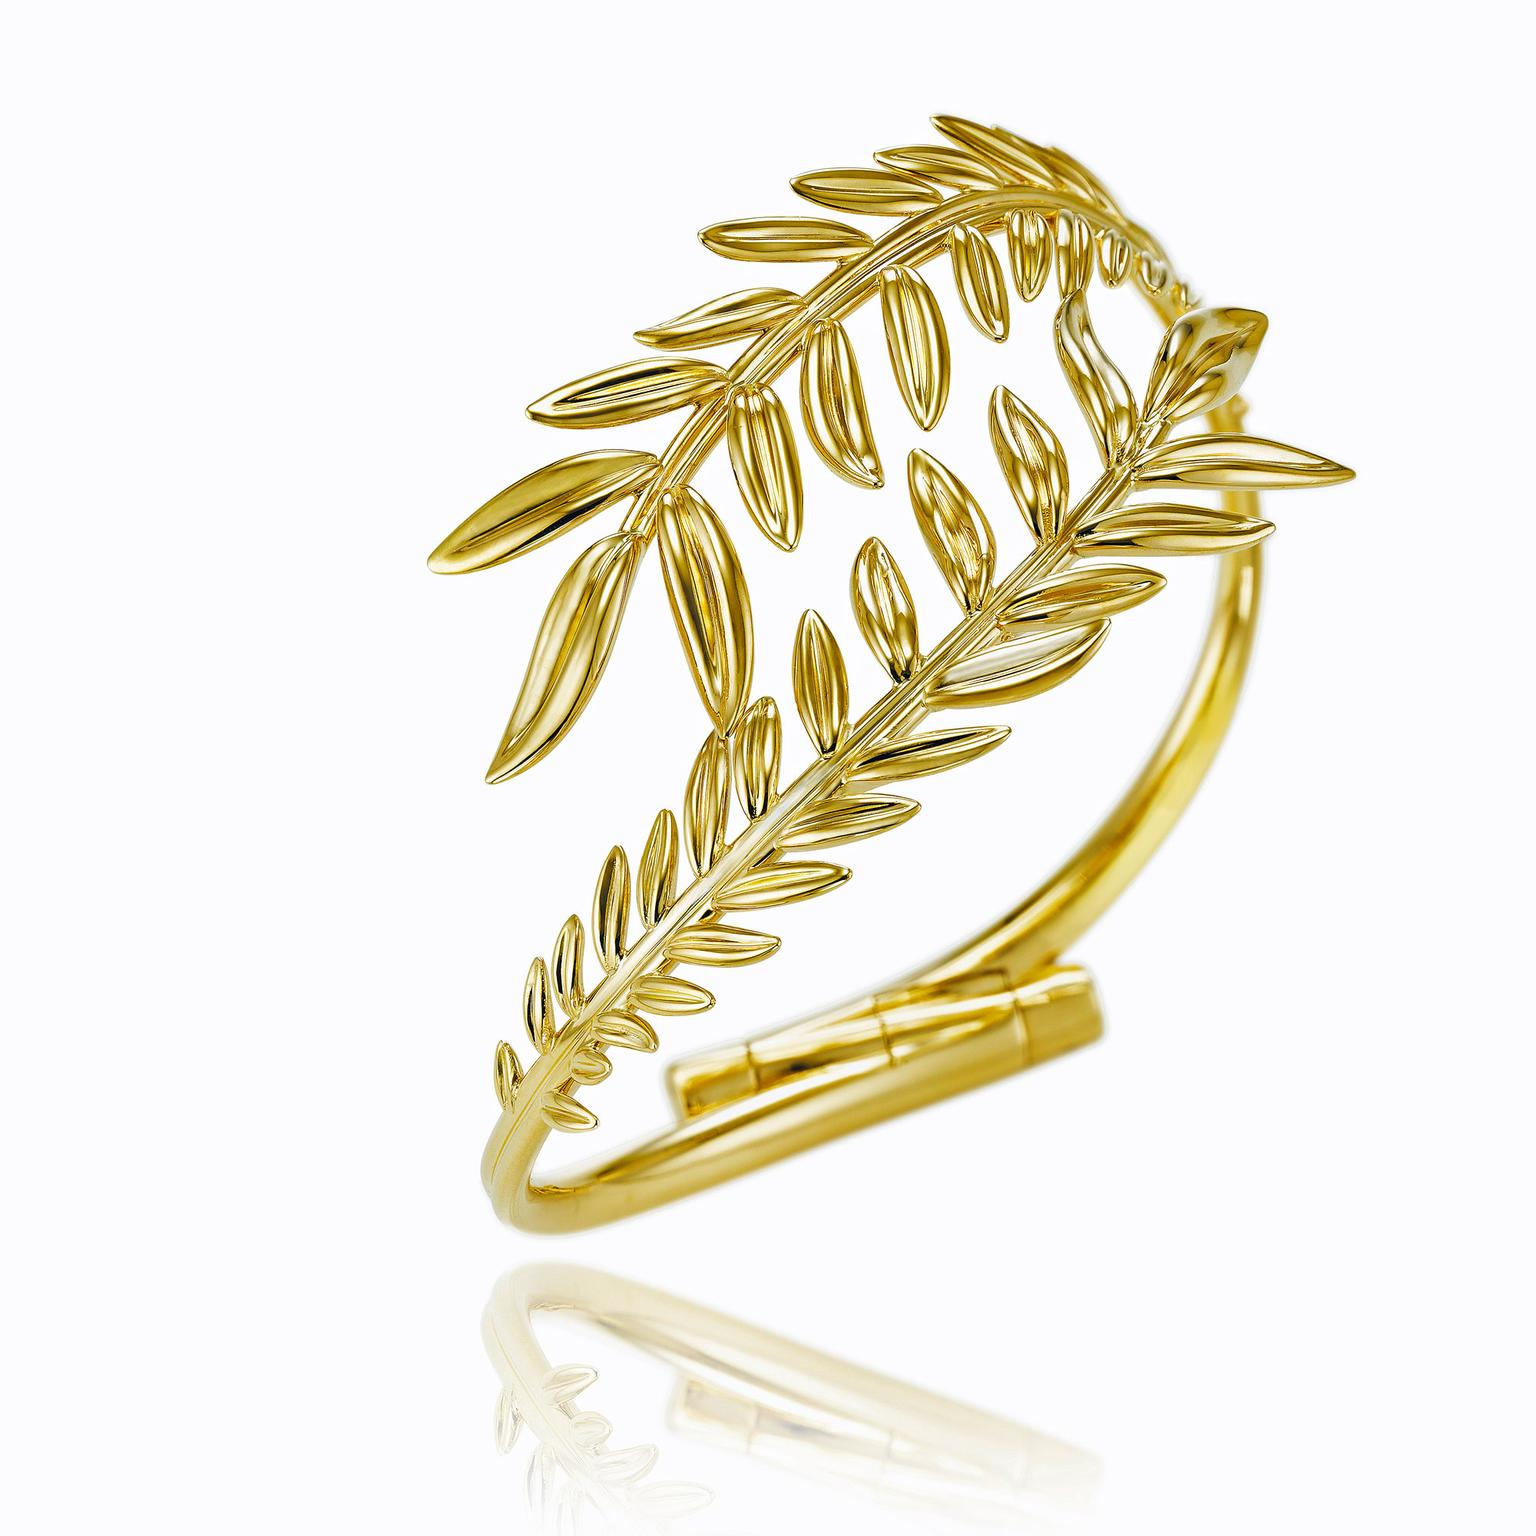 Chopard Palme Verte Fairmined yellow gold bracelet